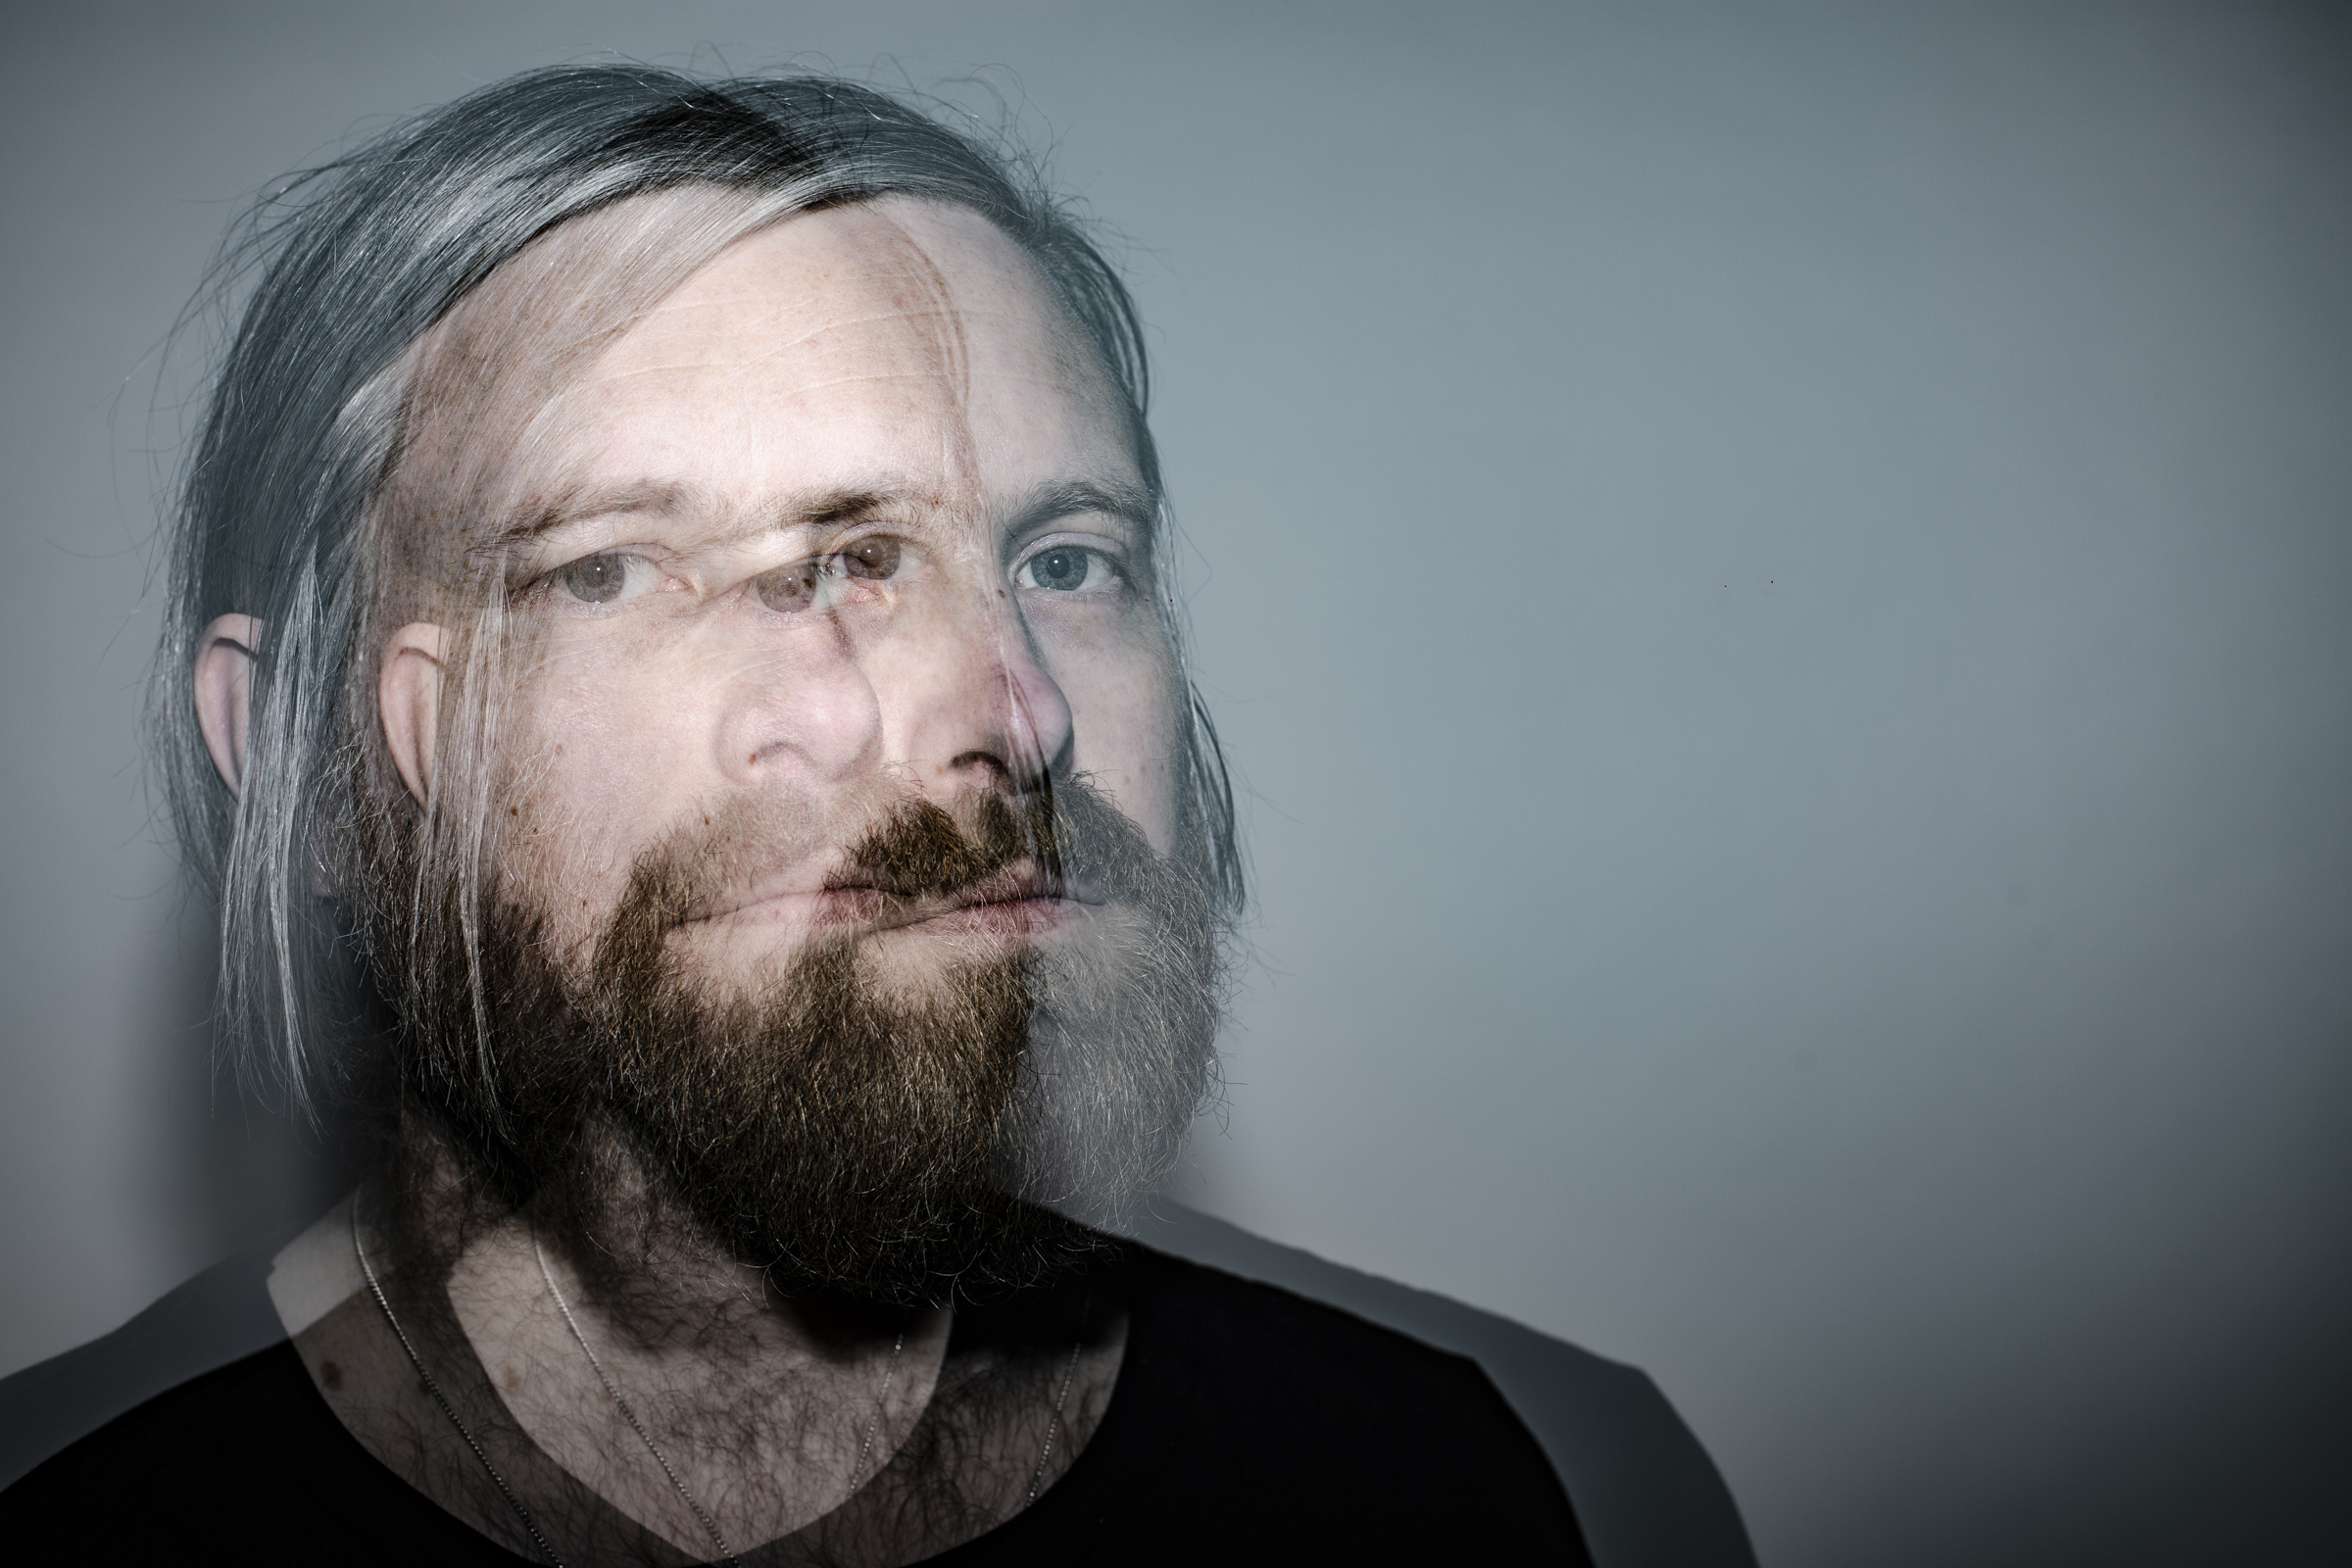 BLANCK MASS announces new record 'In Ferneaux' for Feb 26th release 1